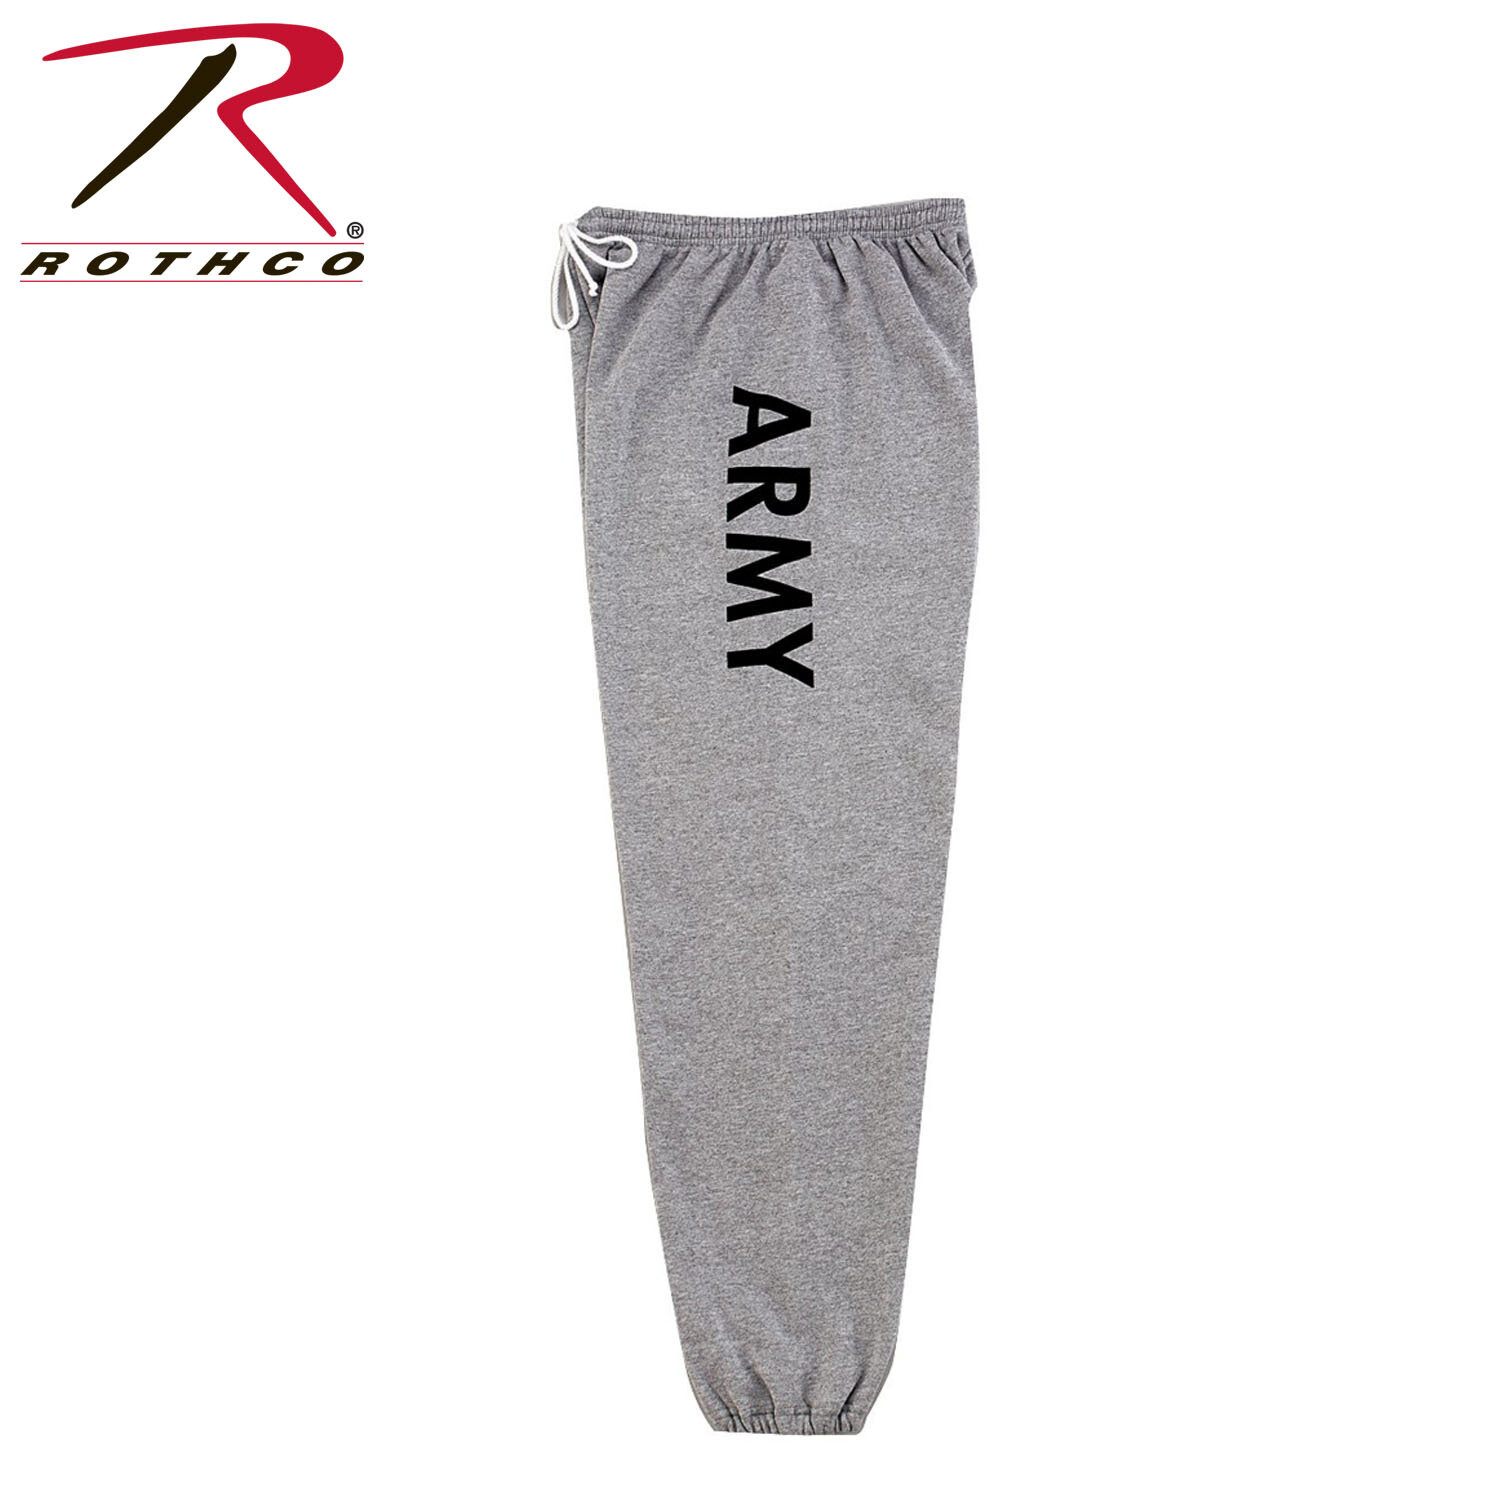 Rothco, 2085, G.I. Type Army Grey Physical Training Sweatpants